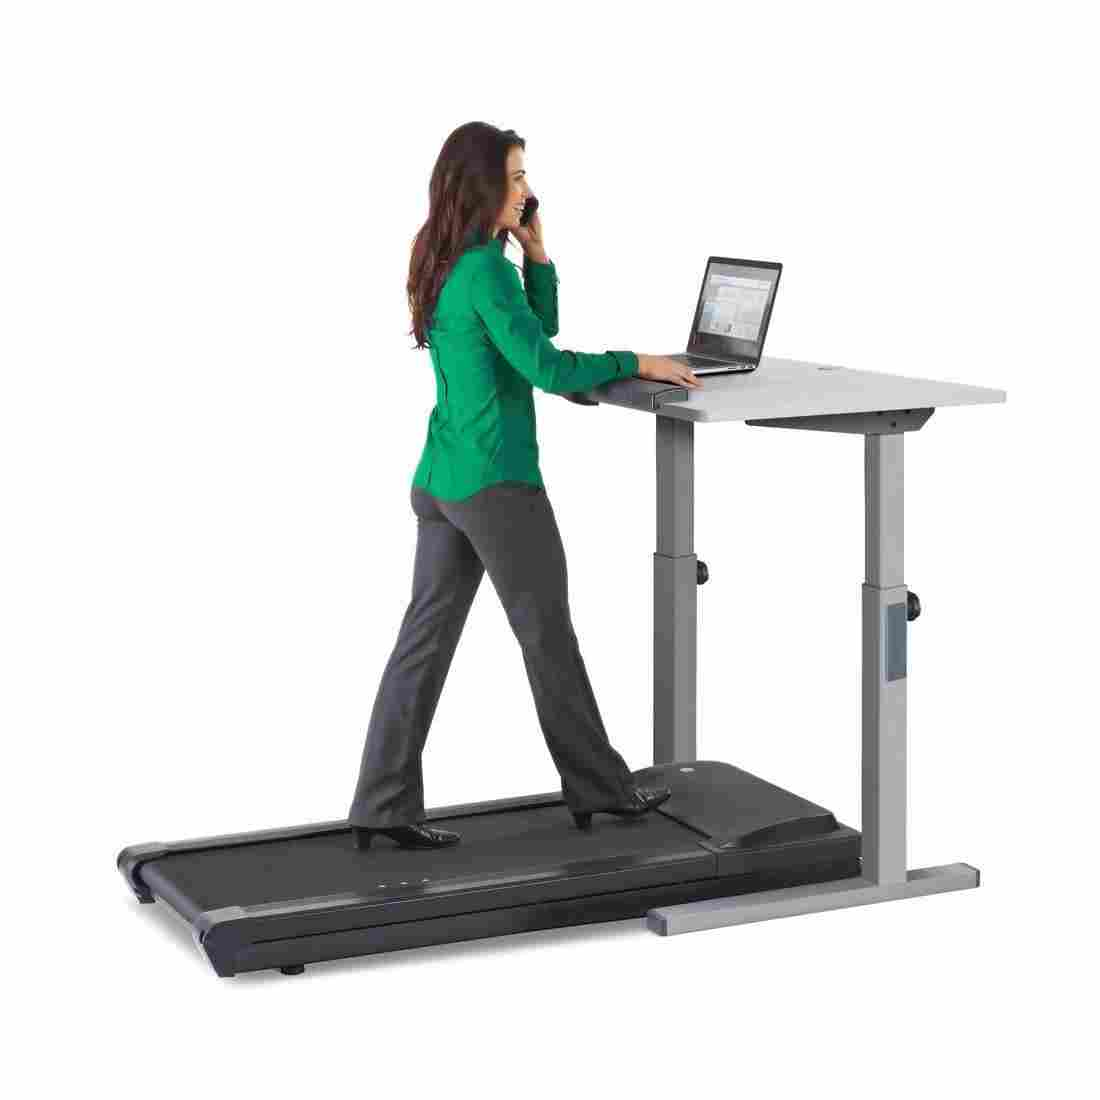 5. LifeSpan TR1200-DT5 Treadmill Desk